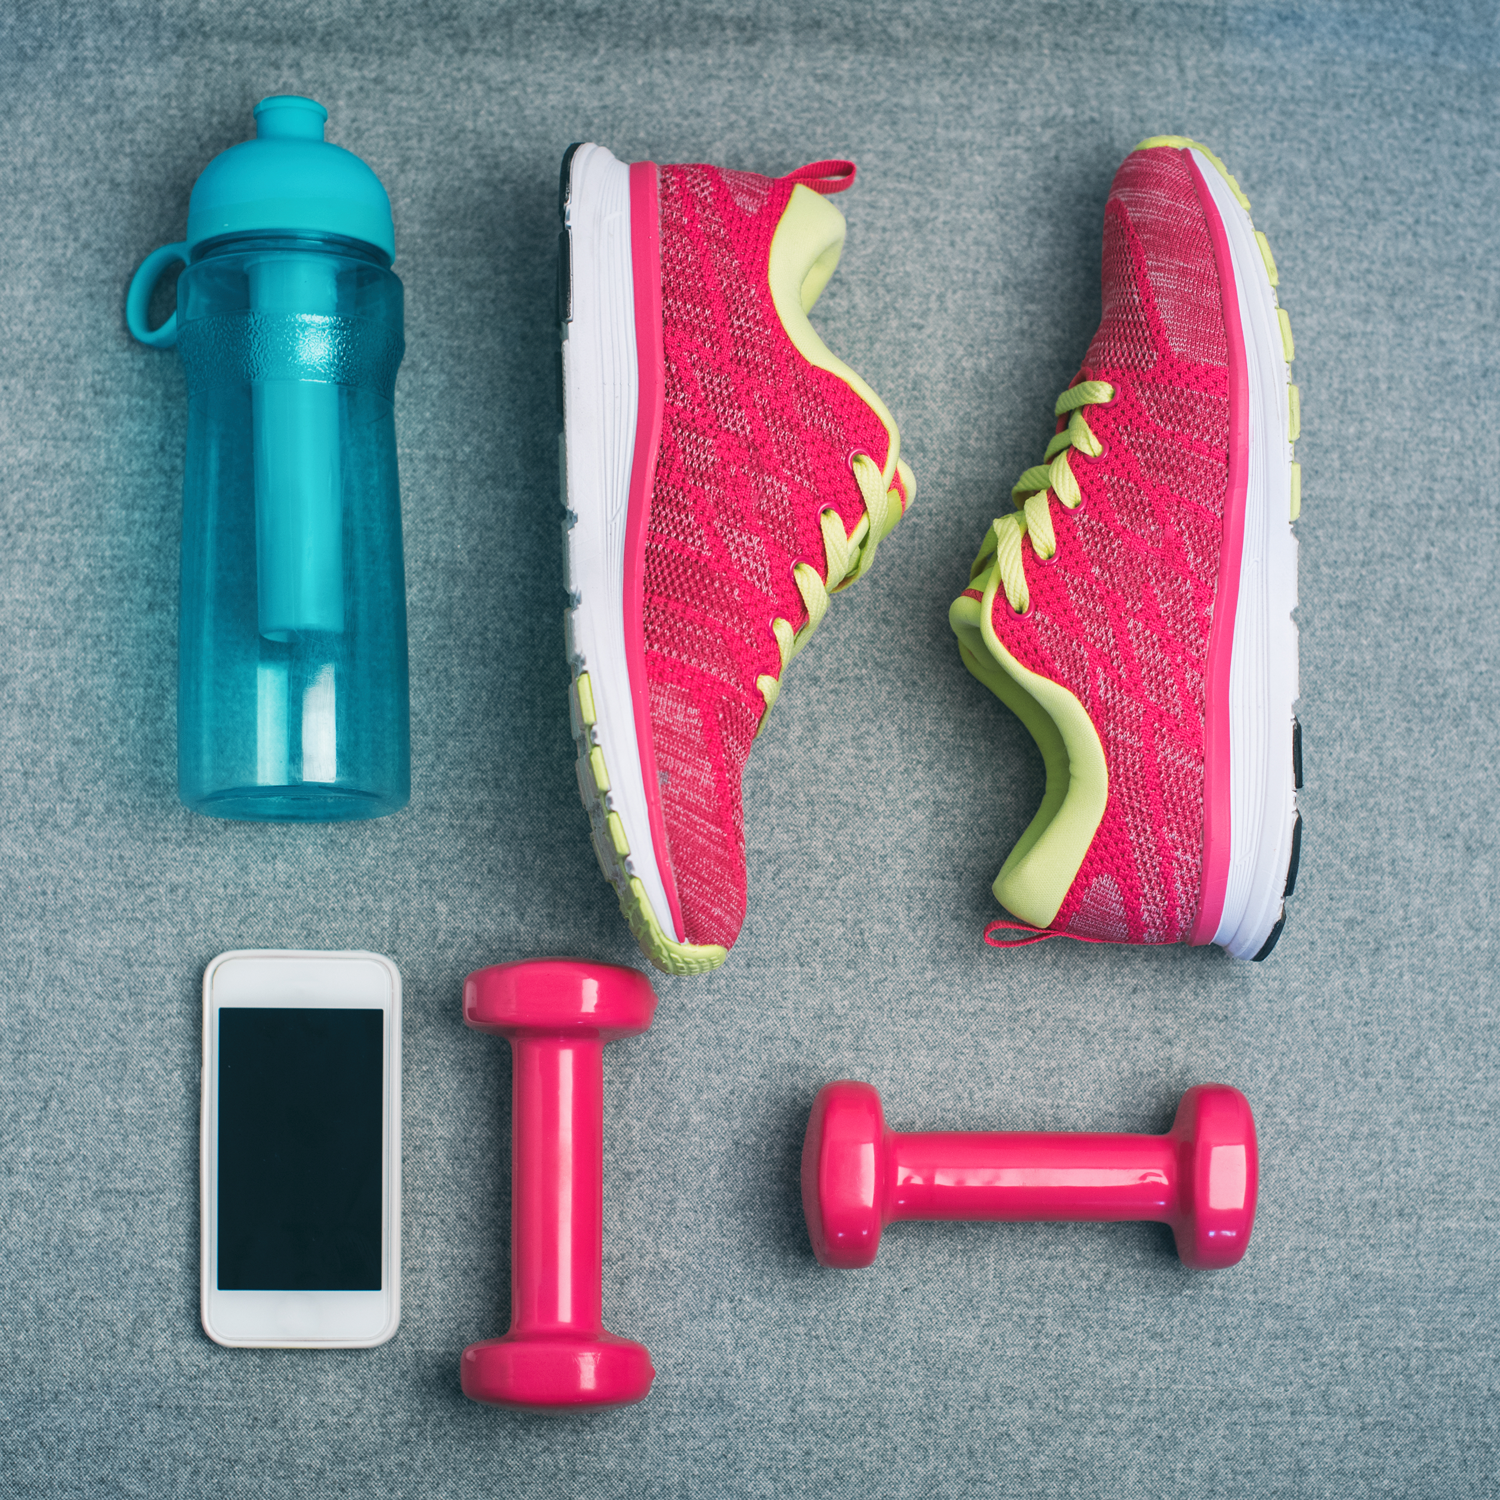 sneakers, water bottle, smart phone and free weights